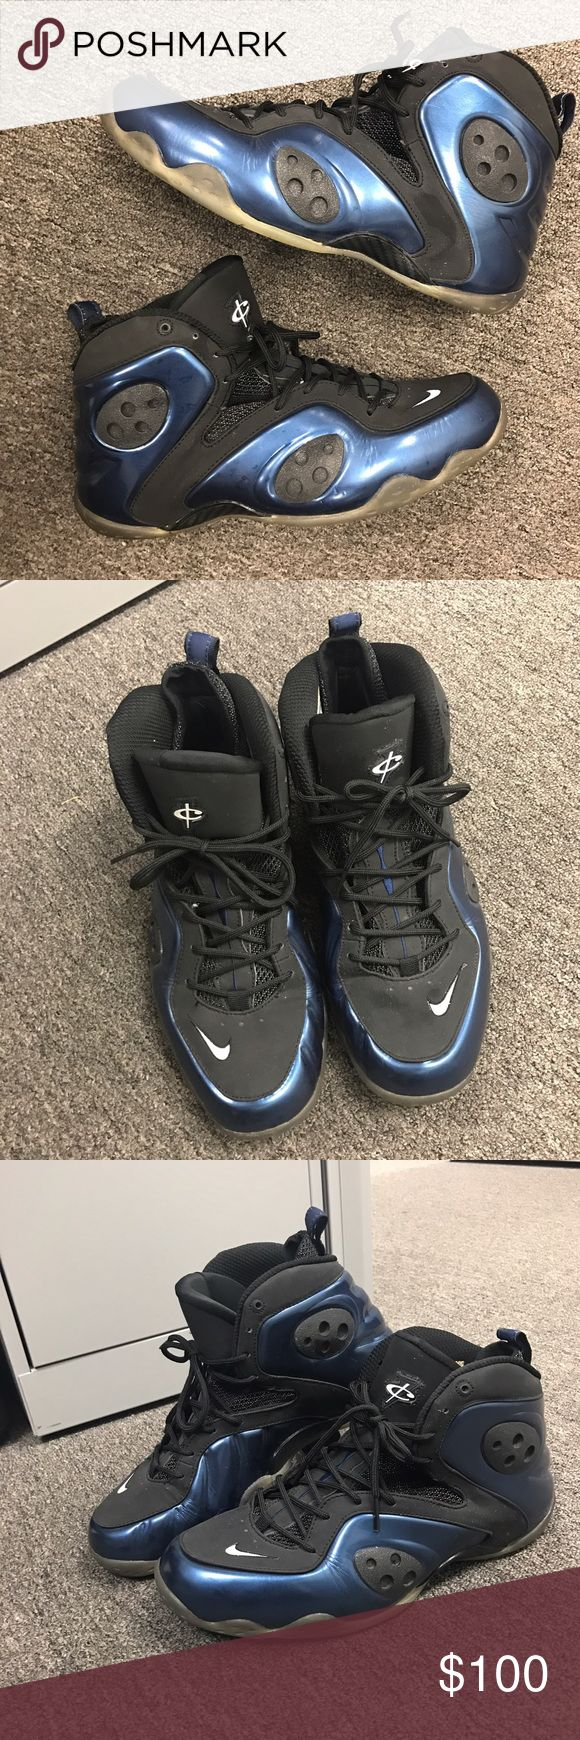 Penny Hardaway Sneakers Worn a few times, in great condition. Nike Shoes Sneakers